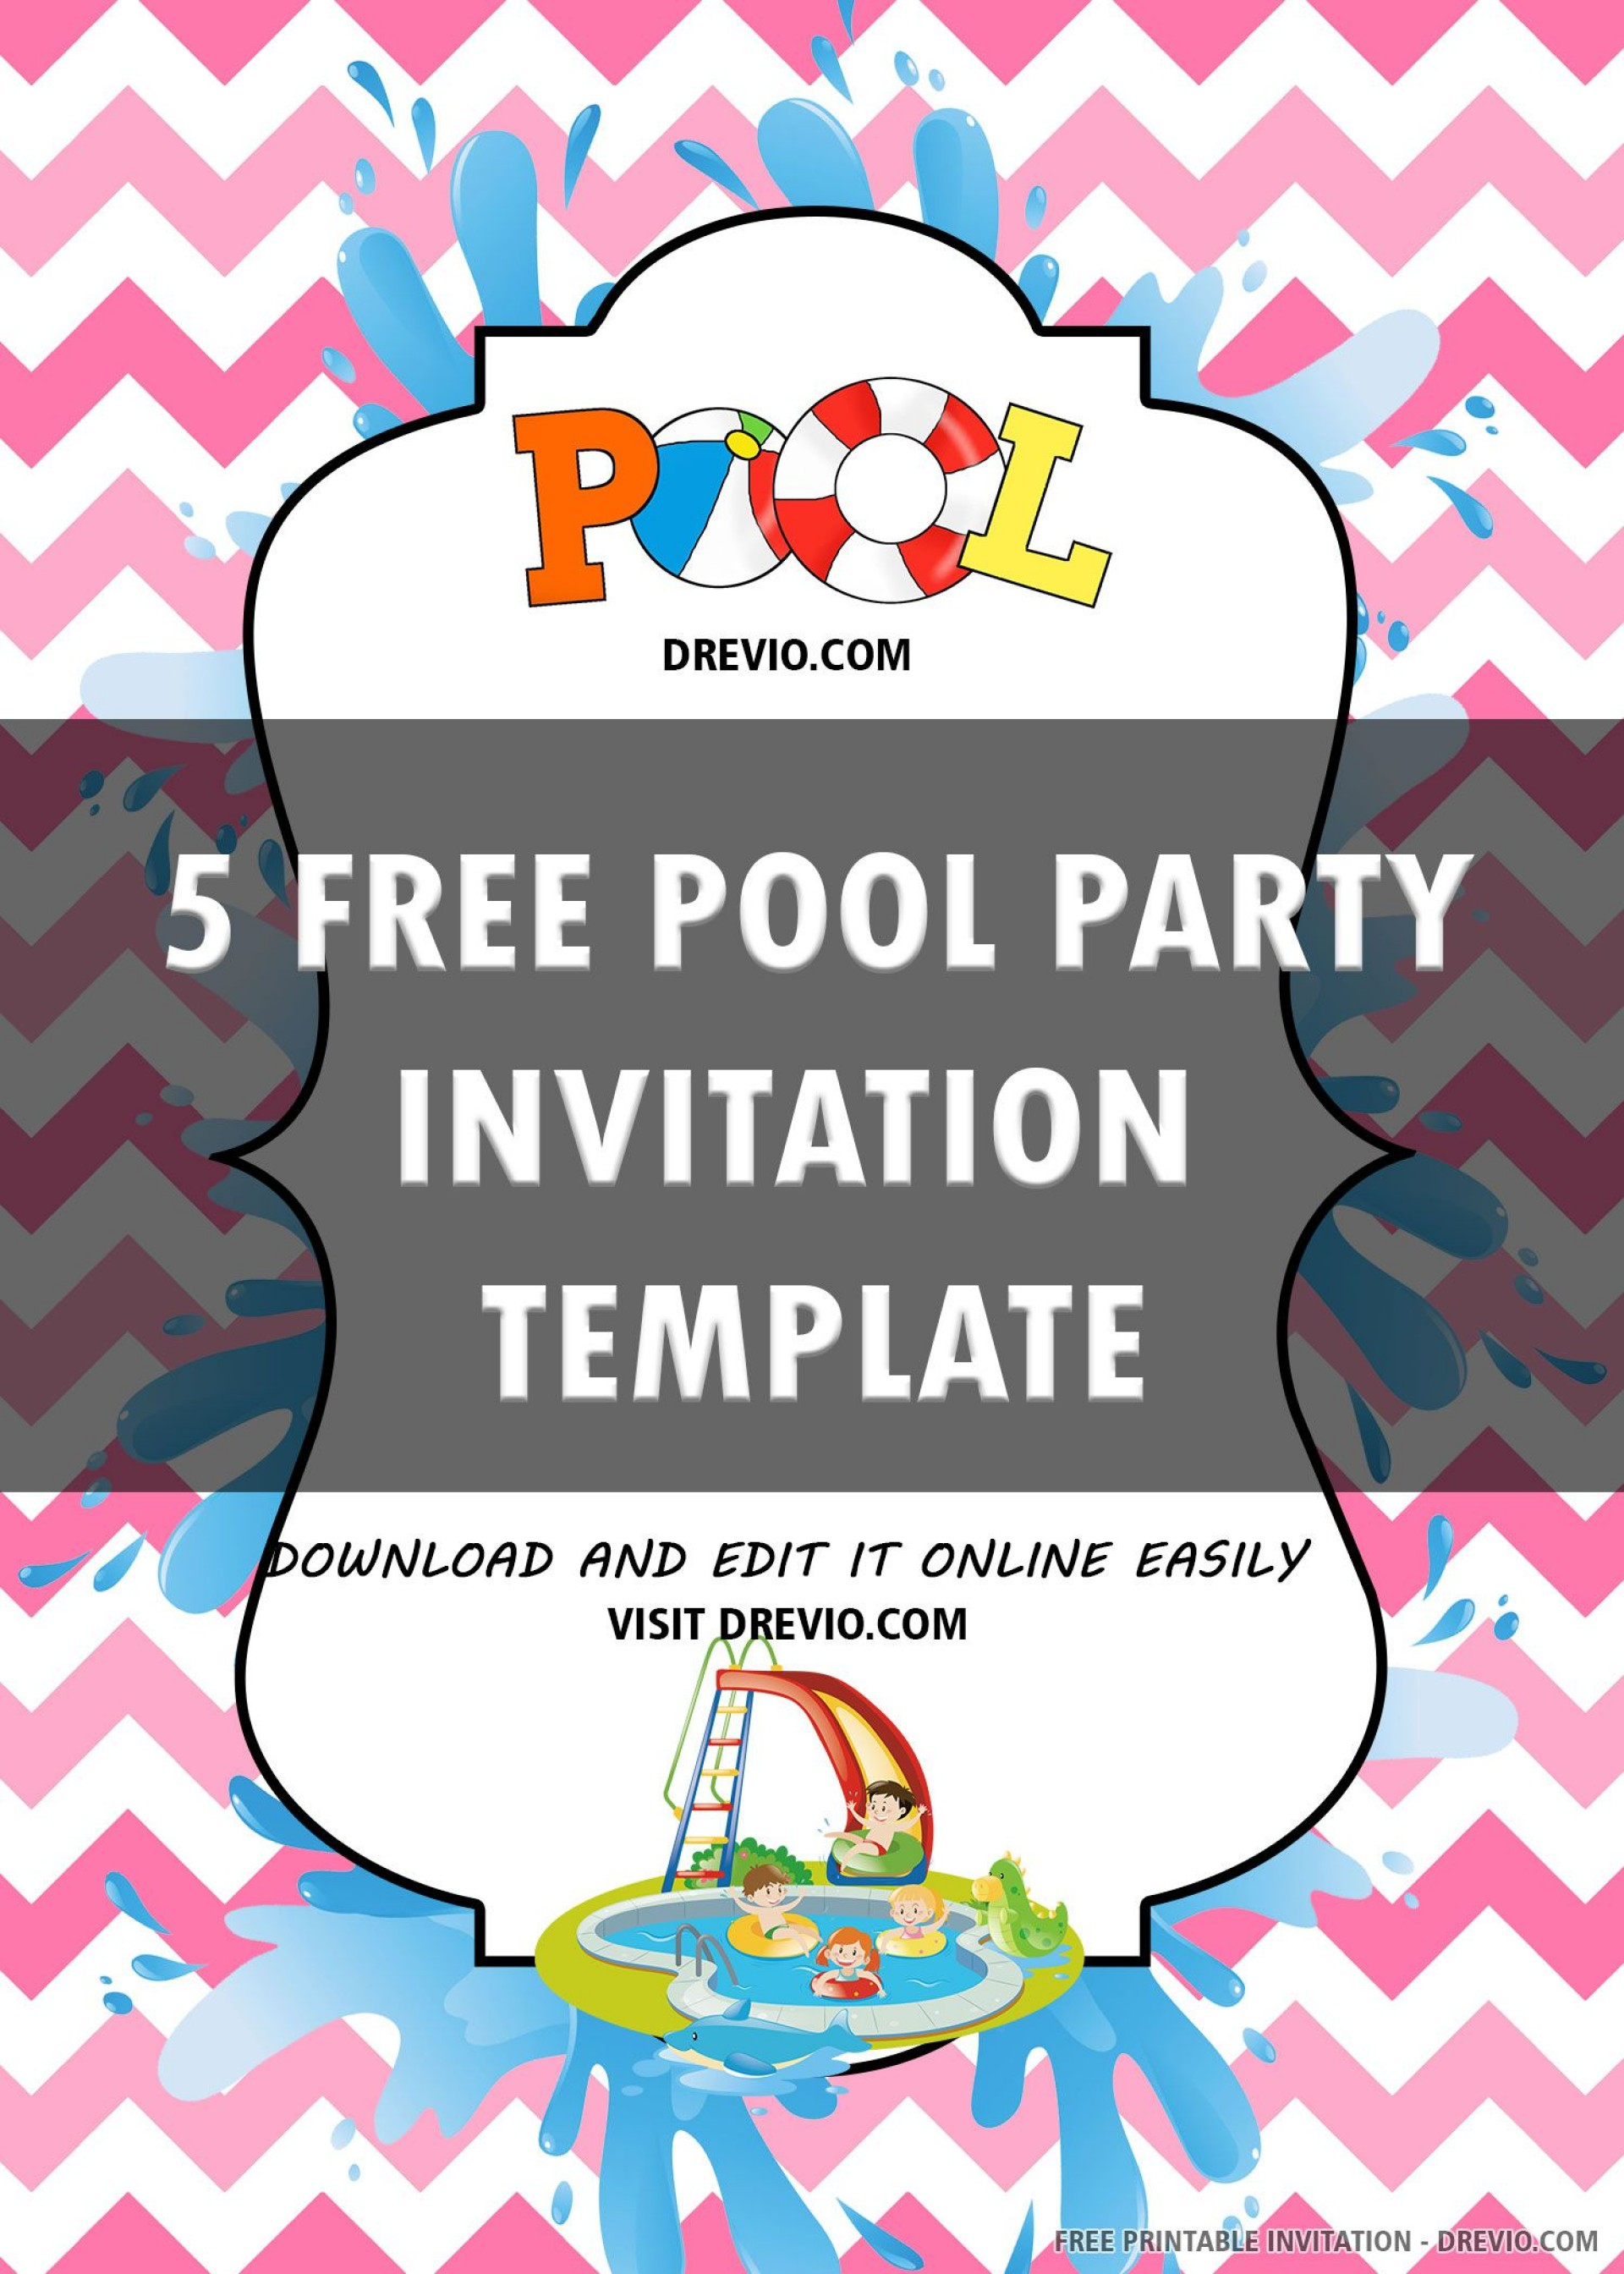 006 Simple Free Pool Party Invitation Template Printable Highest Quality  Card Summer1920